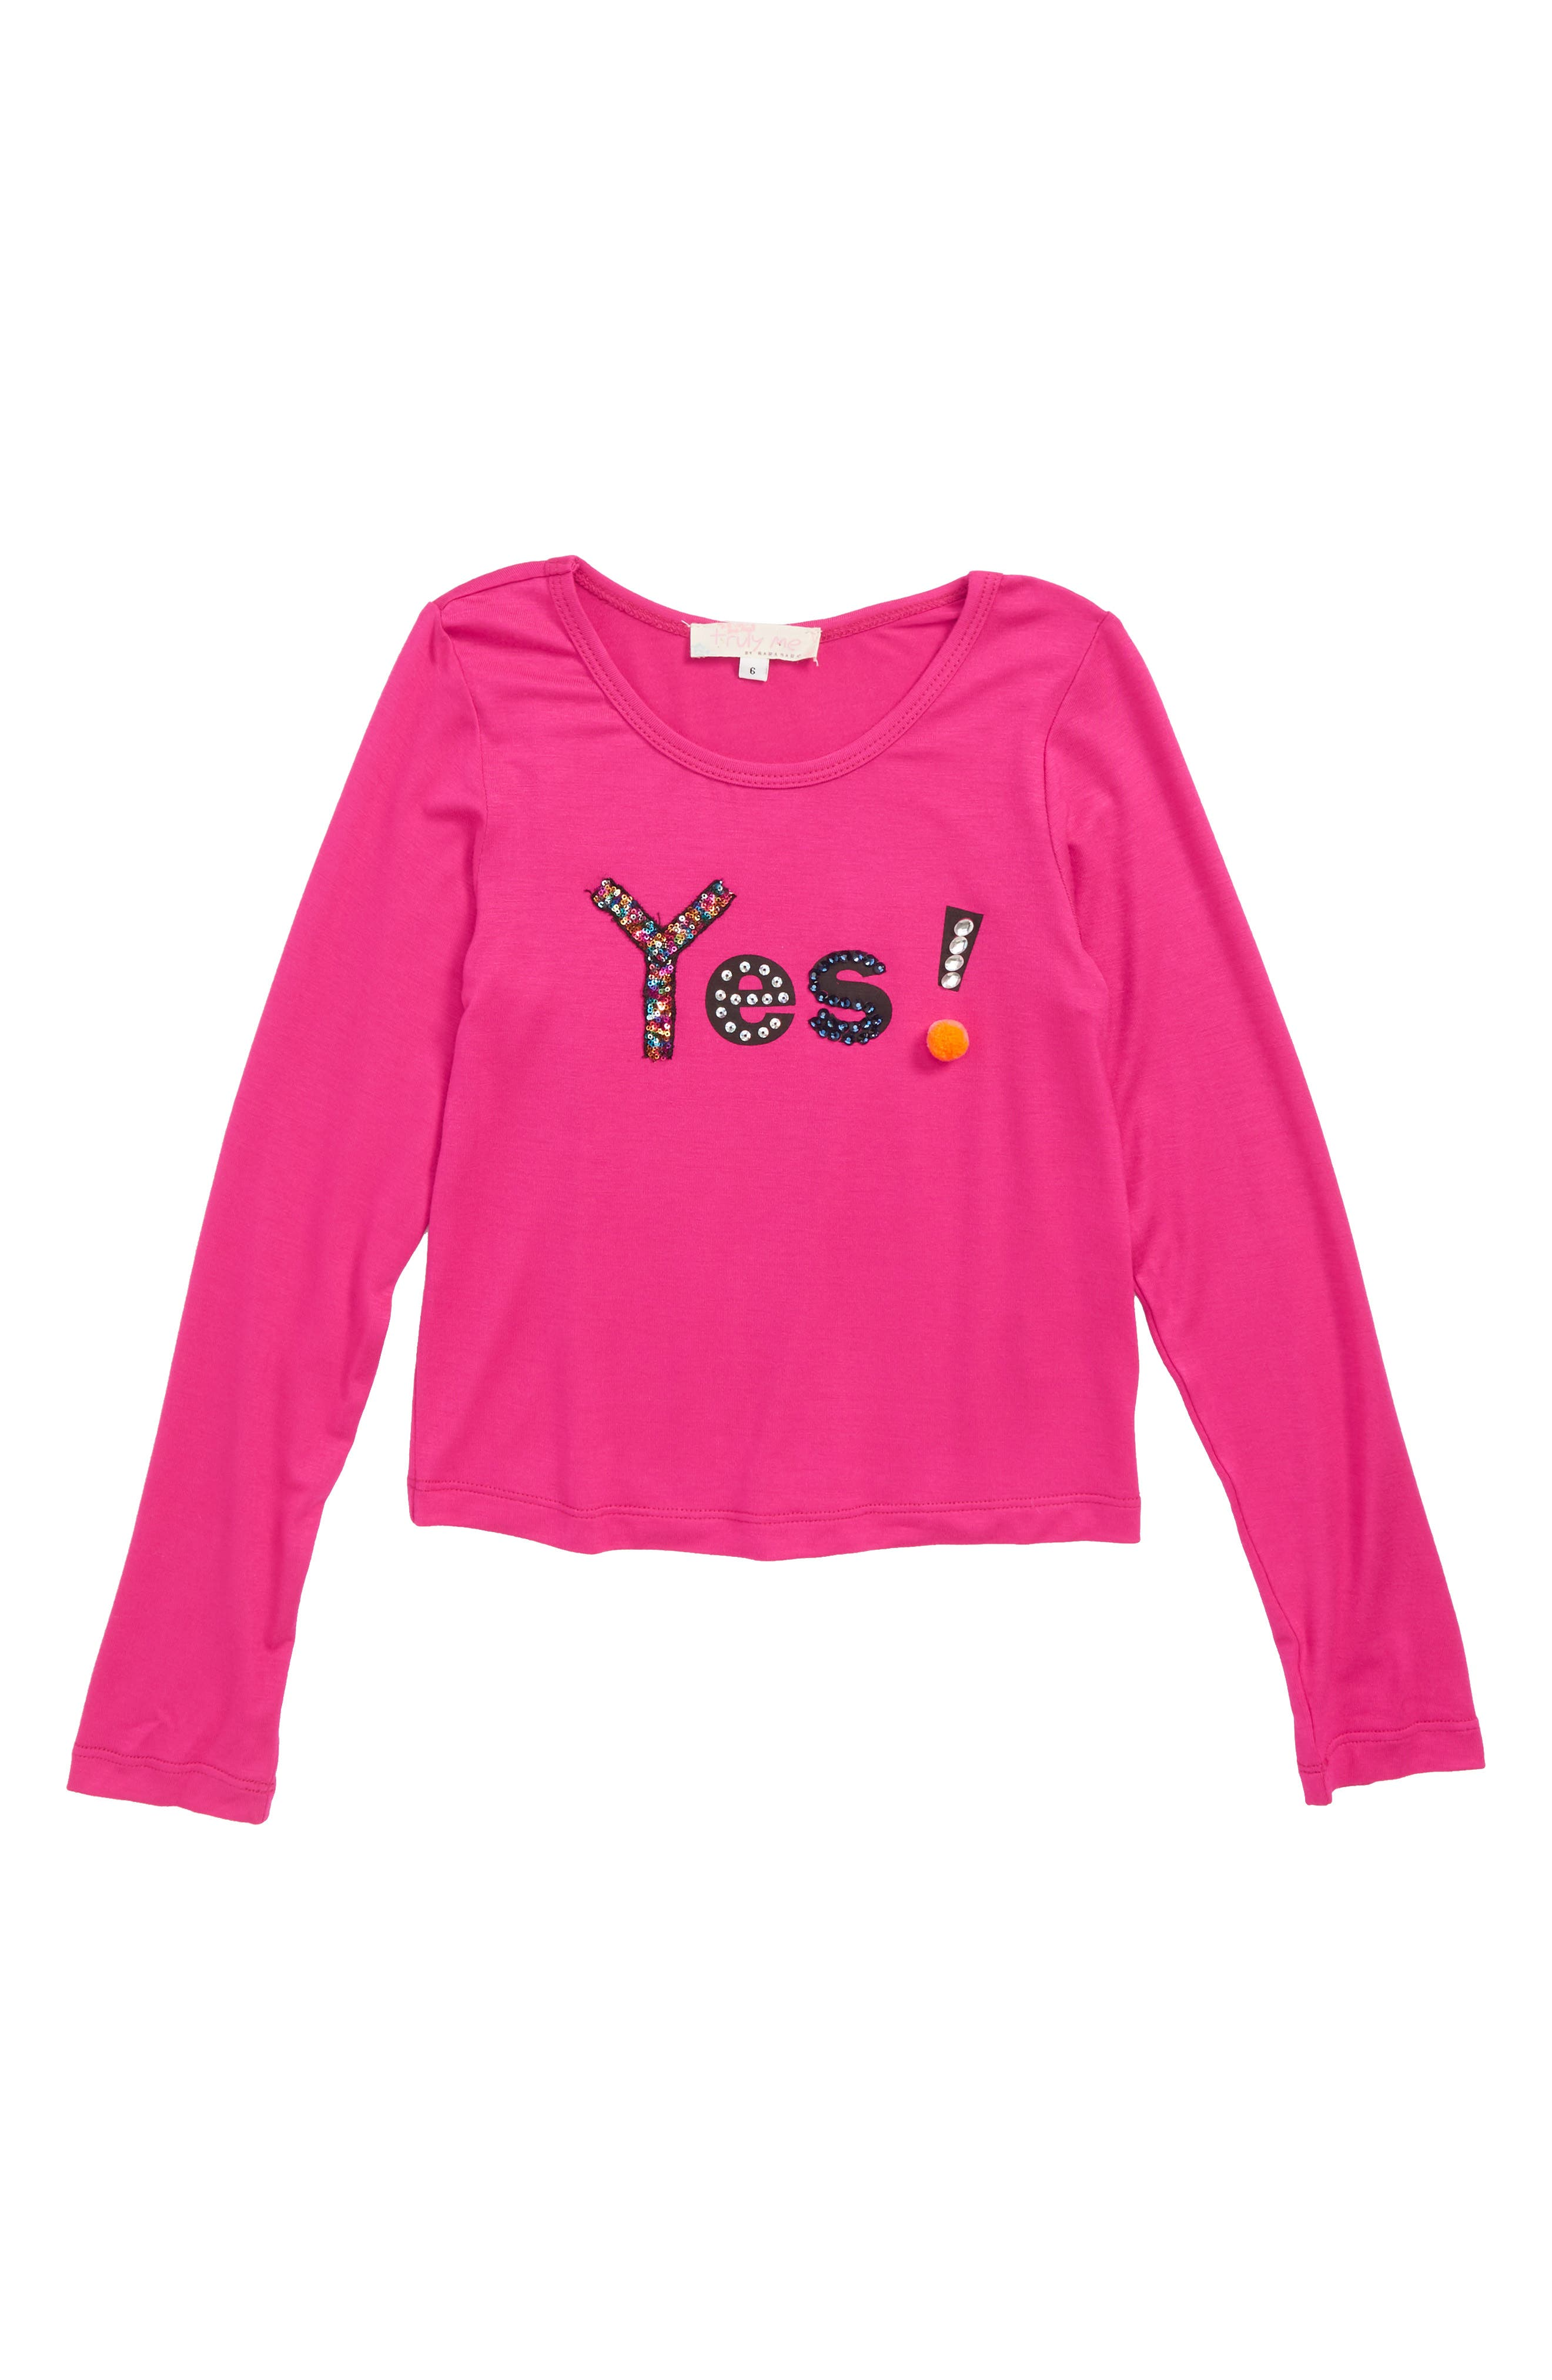 Yes Graphic Long Sleeve Tee,                         Main,                         color, 670